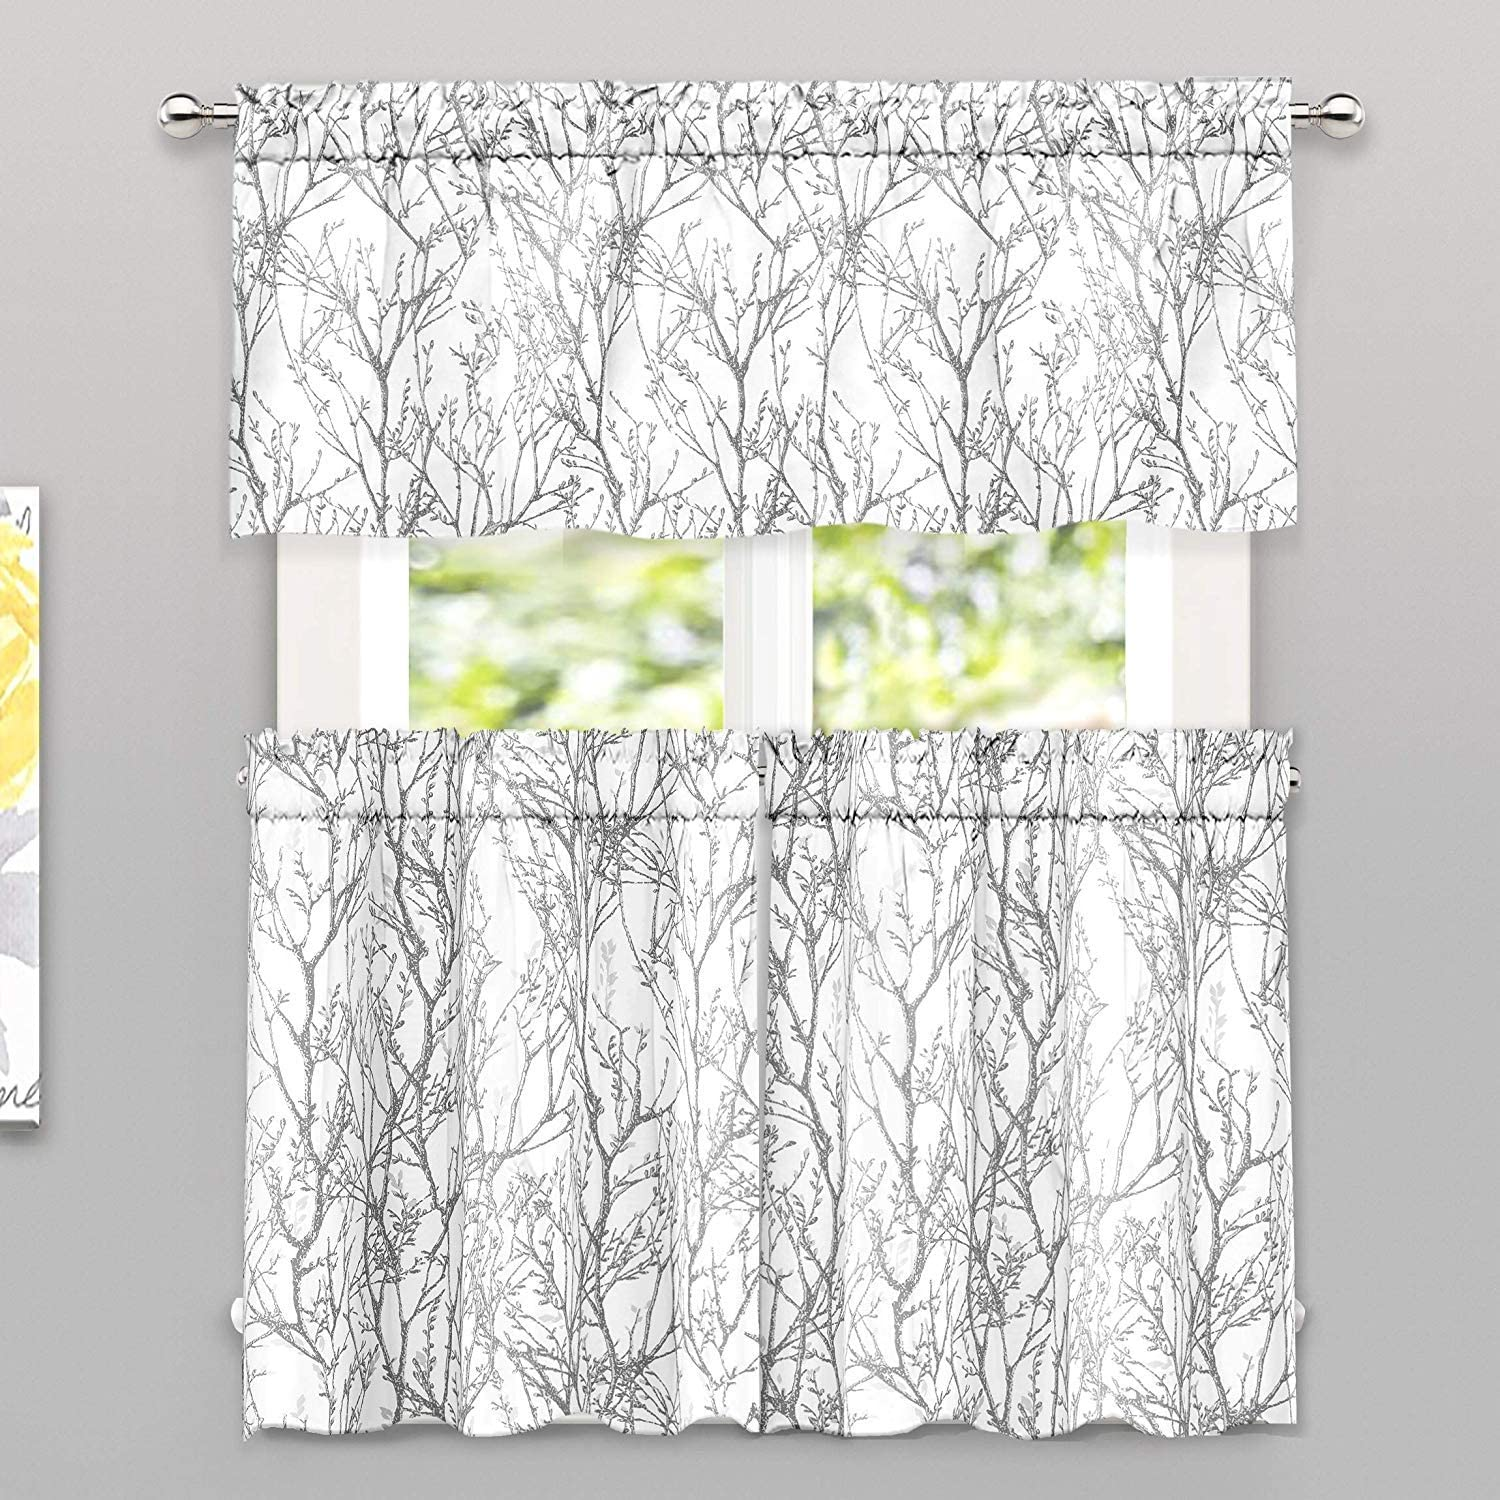 DriftAway Tree Branch Botanical Pattern Semi Sheer 3 Pieces Rod Pocket Kitchen Window Curtain Set with 2 Tiers 26 Inch by 24 Inch Each and 1 Valance 52 Inch by 14 Inch Gray White